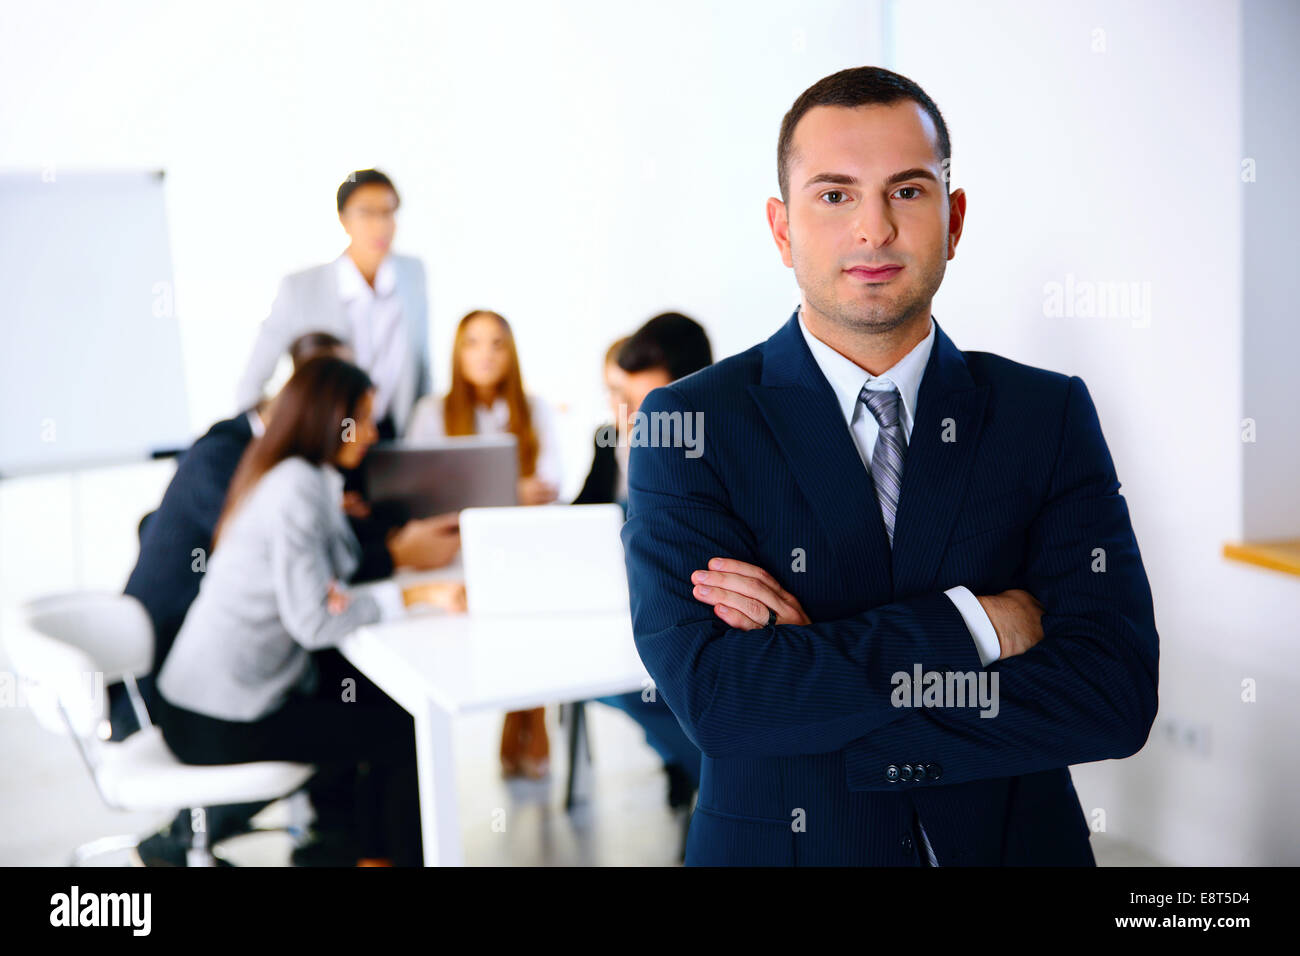 Portrait of a businessman standing in front of business meeting - Stock Image